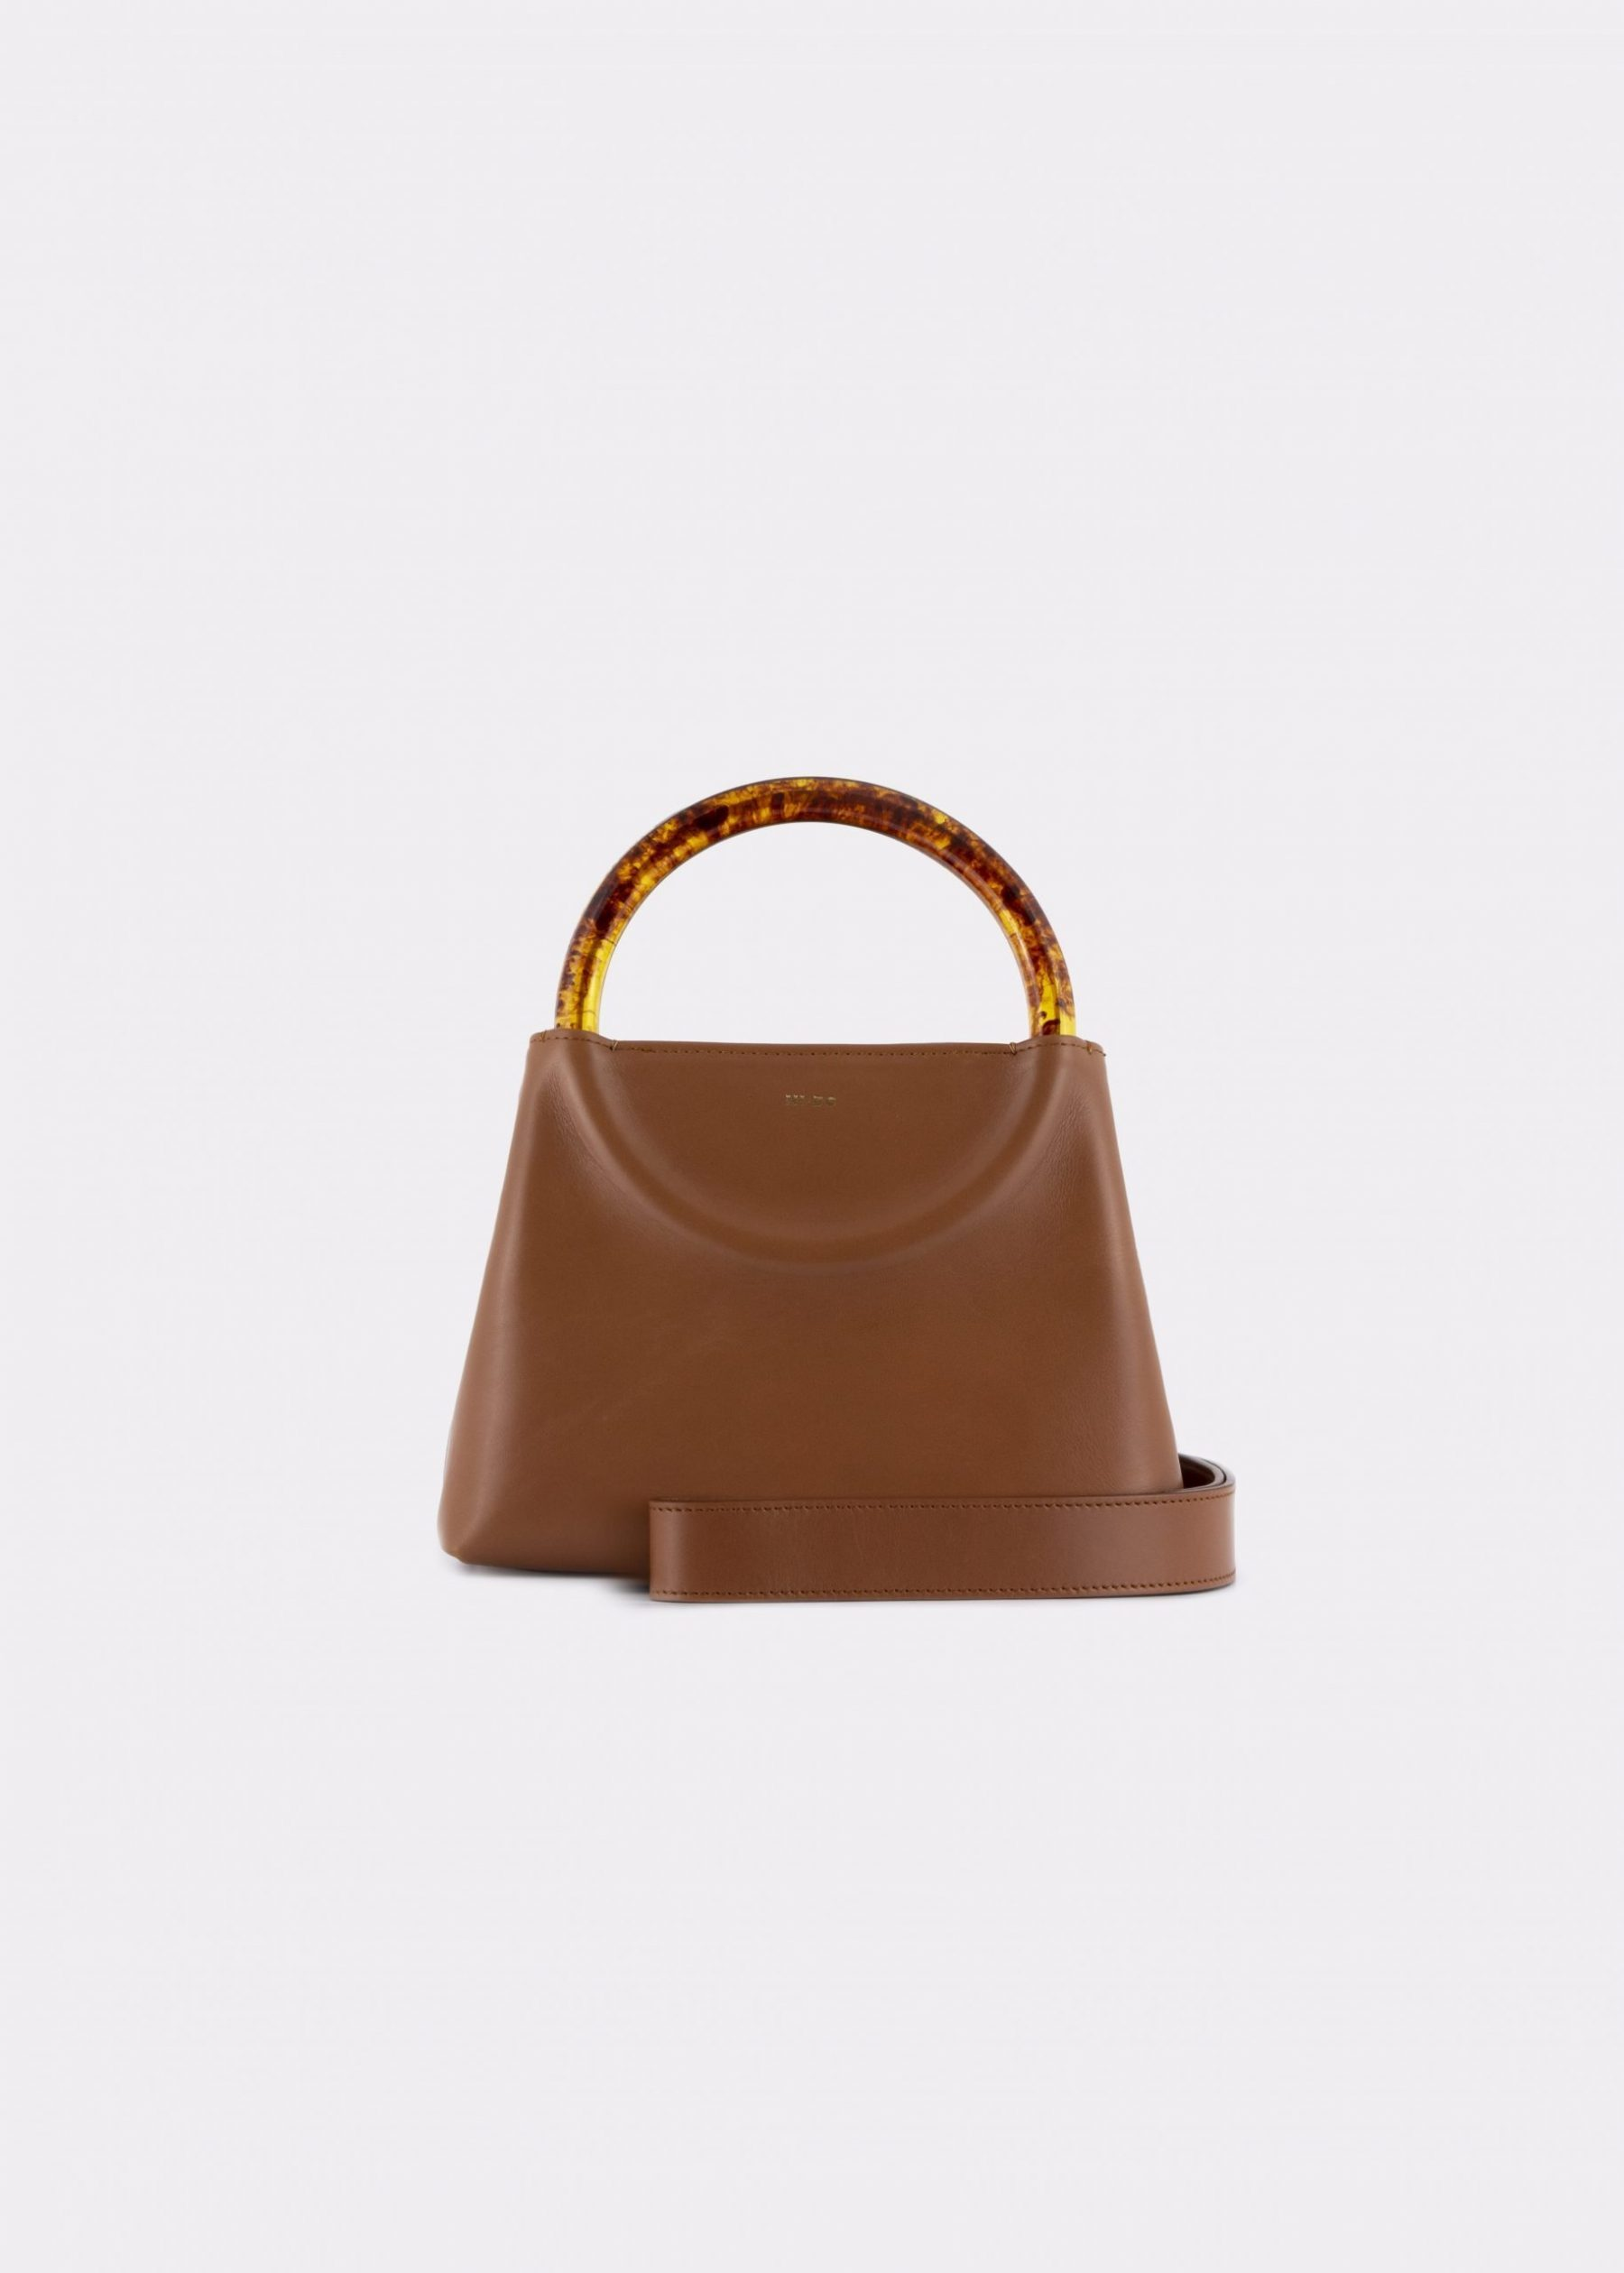 NIDO Bolla Mini Biscuit/Amber_ shoulder strap view